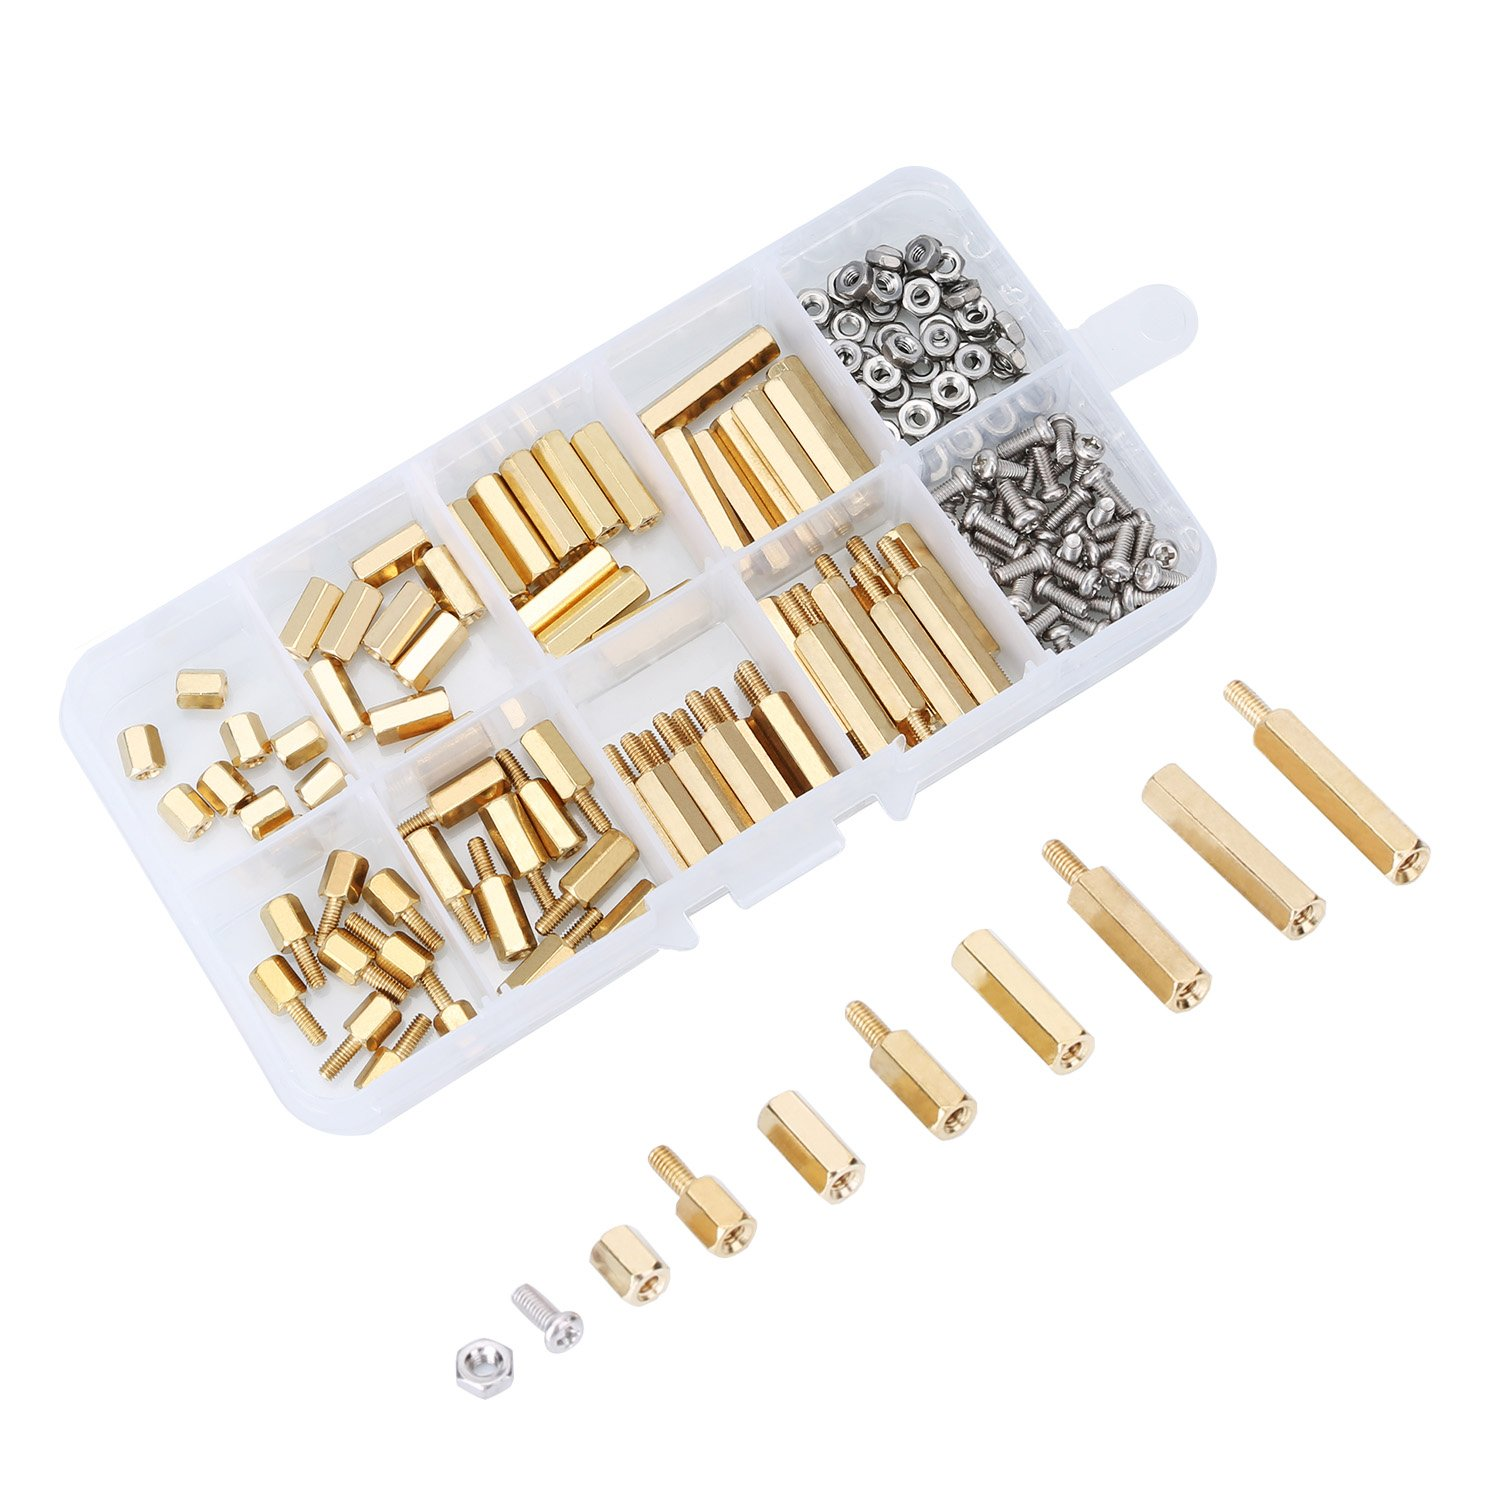 180 Pieces M2.5 Male Female Hex Brass Spacer Standoff Screw Nut Assortment Kit eBoot